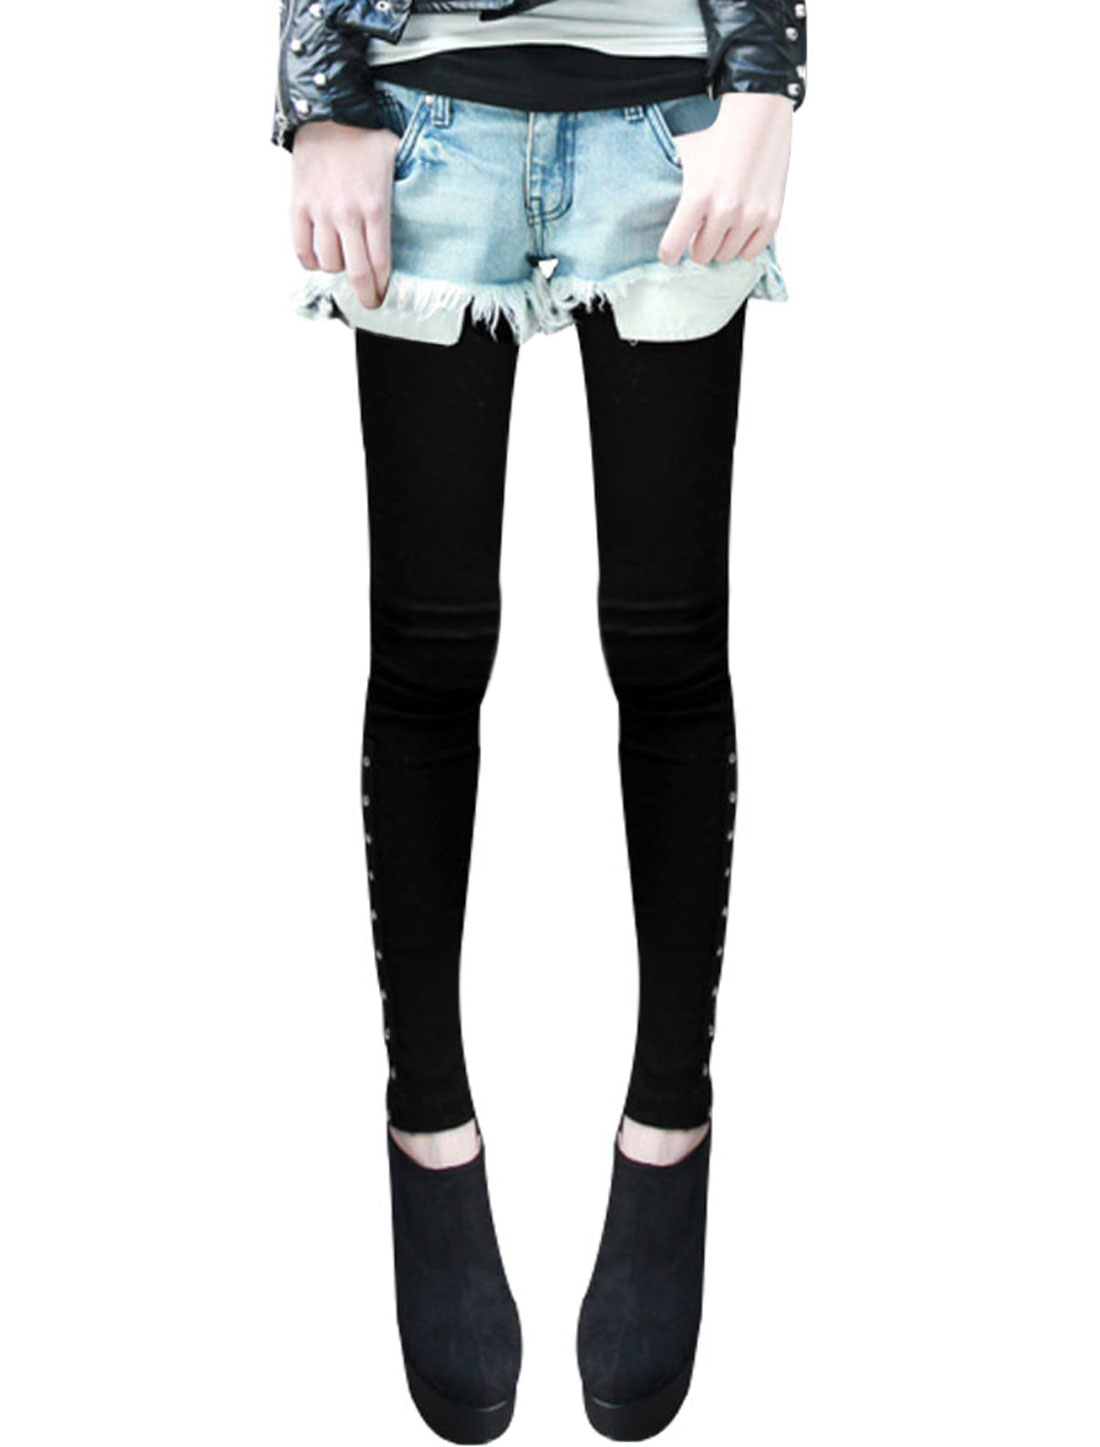 Women Black Elastic Waist Skinny Tight Stretchy Spring Casual Leggings XS